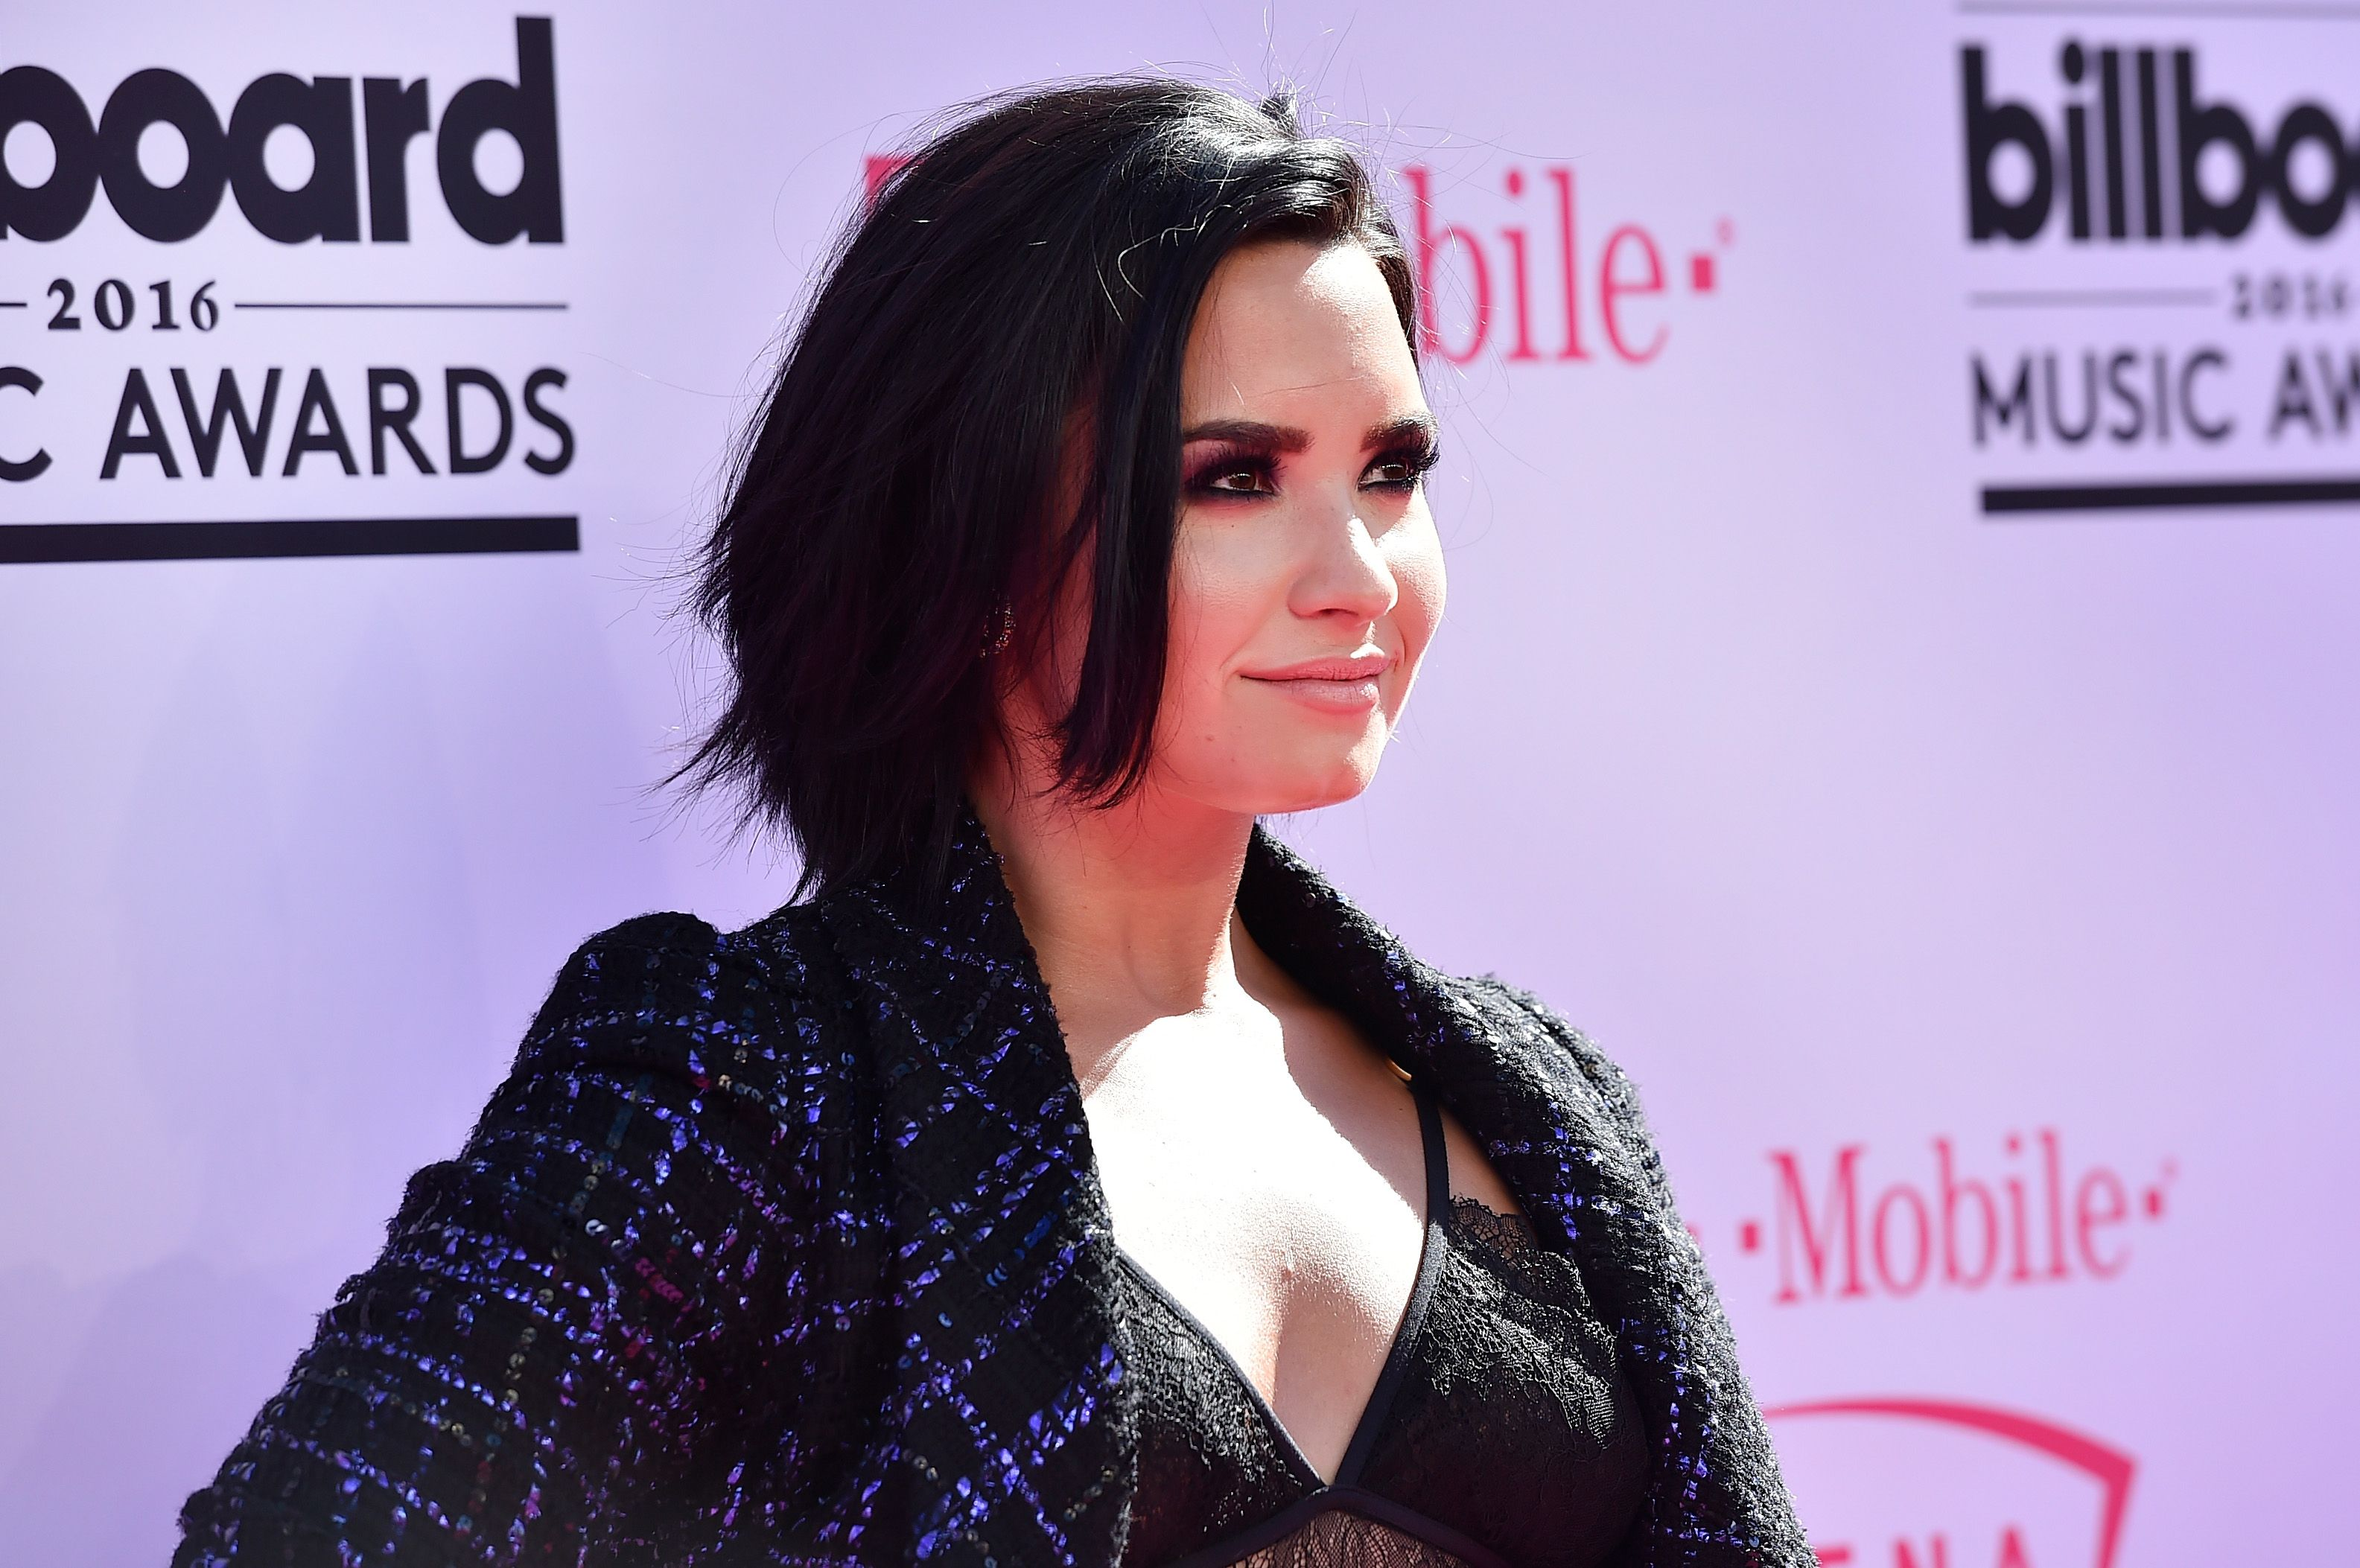 Demi Lovato at the 2016 Billboard Music Awards at T-Mobile Arena on May 22, 2016 | Photo: Getty Images